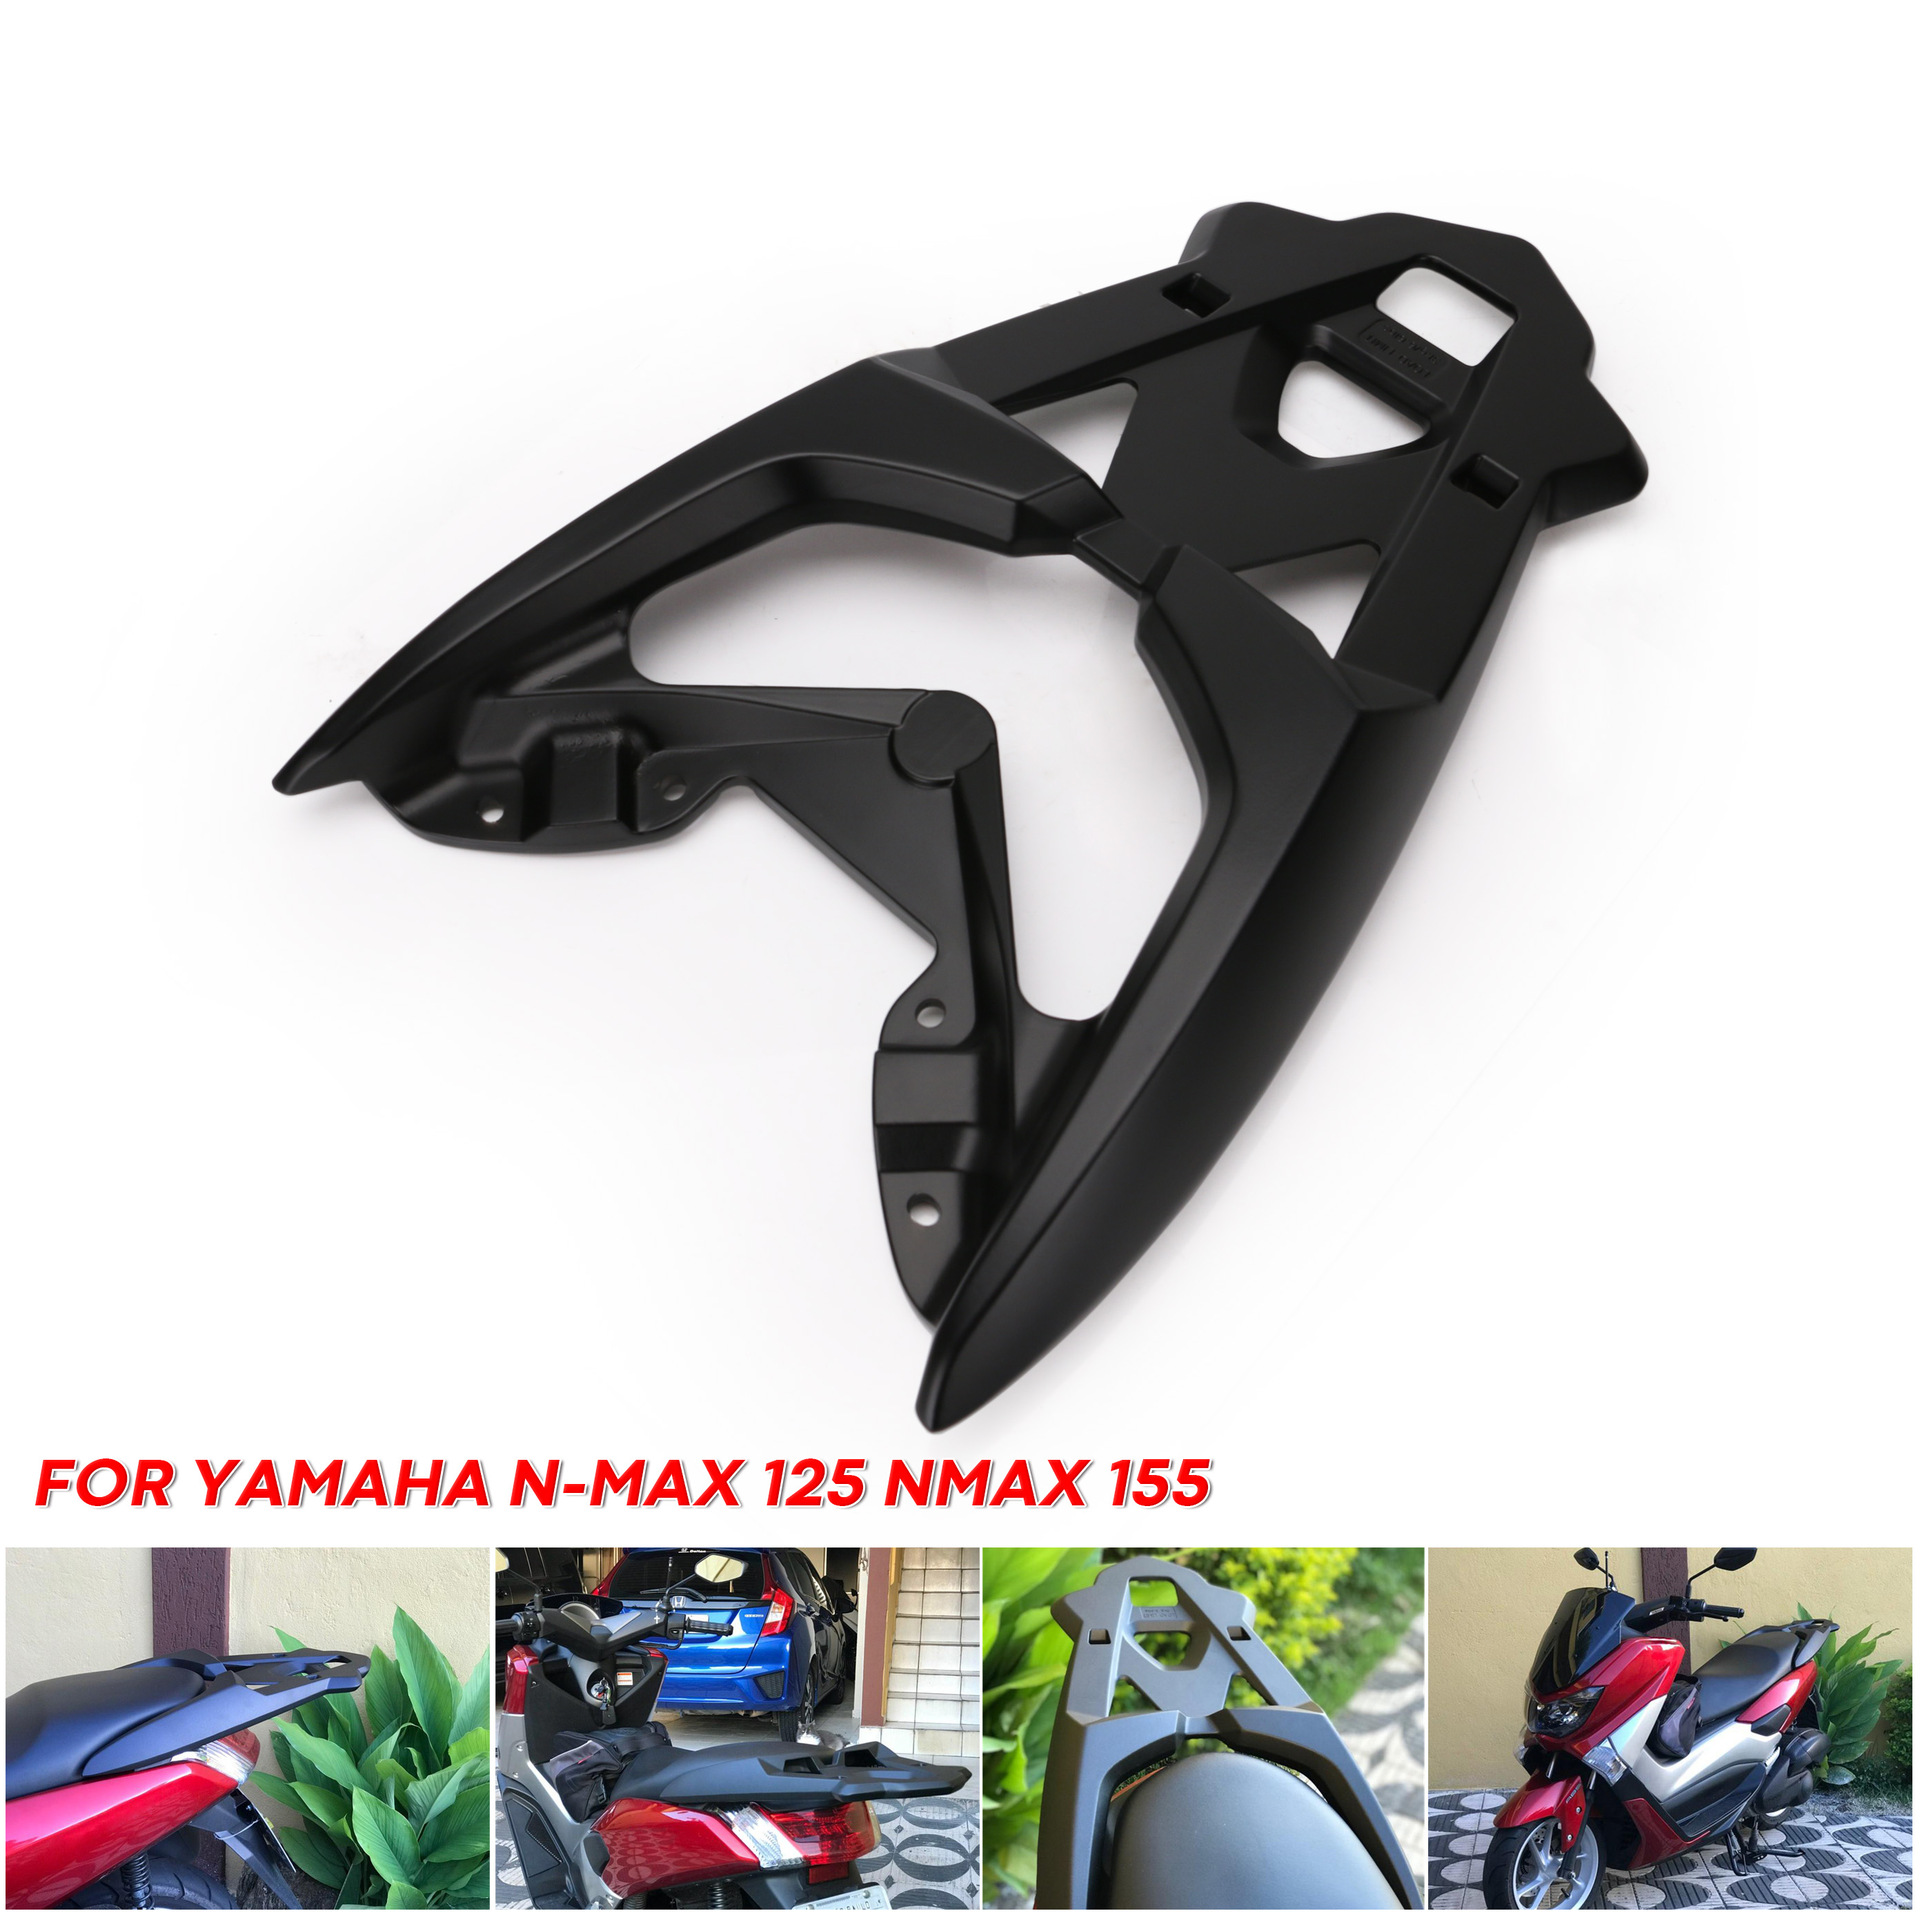 Stainless Steel Motorcycle Modified Motorcycle Rear Seat Luggage Holder Shelf Bracket For Yamaha Nmax 155 As picture show